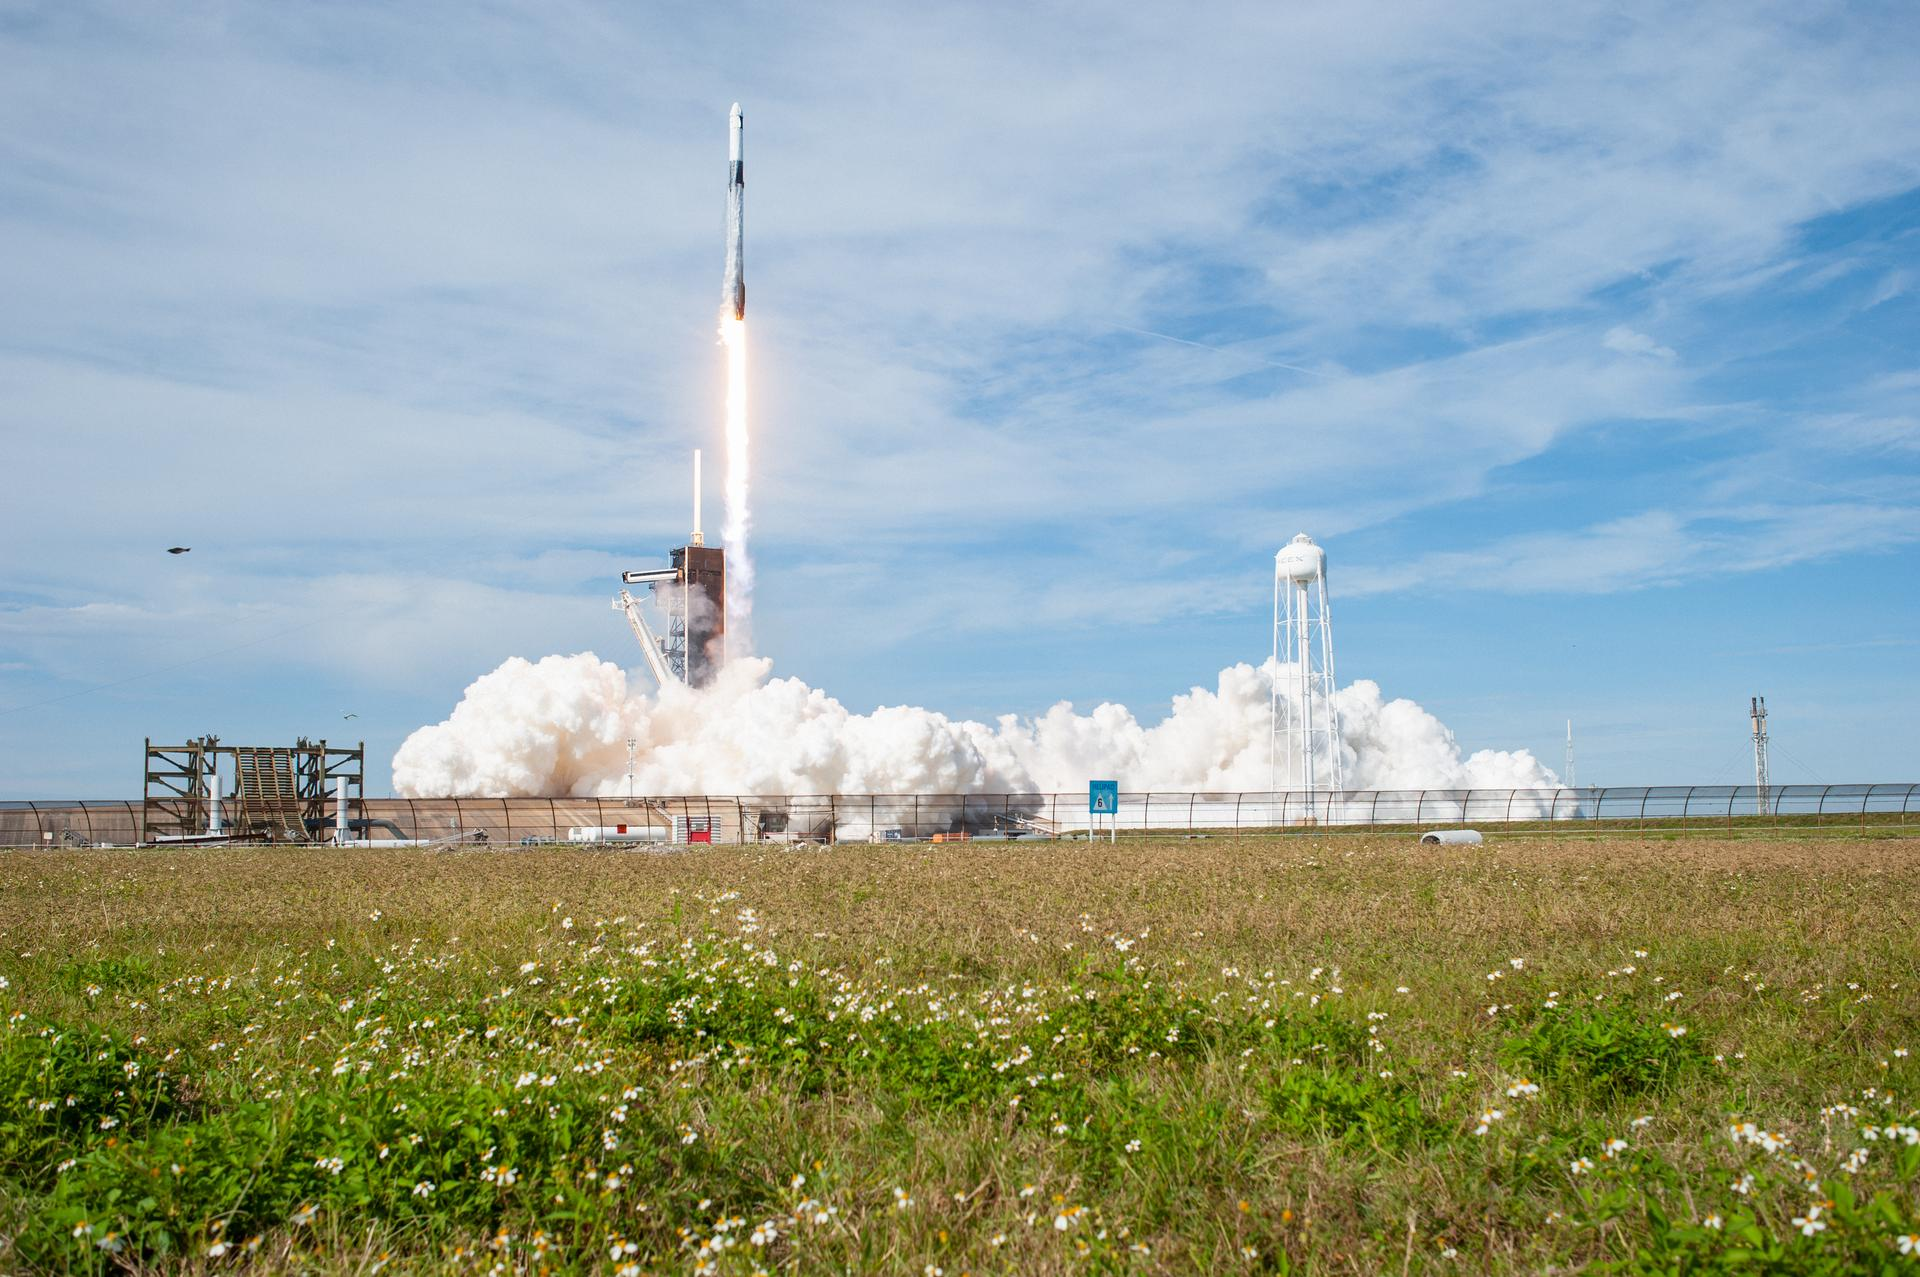 NASA Invites Public to Share Excitement of SpaceX Cargo Launch - NASA